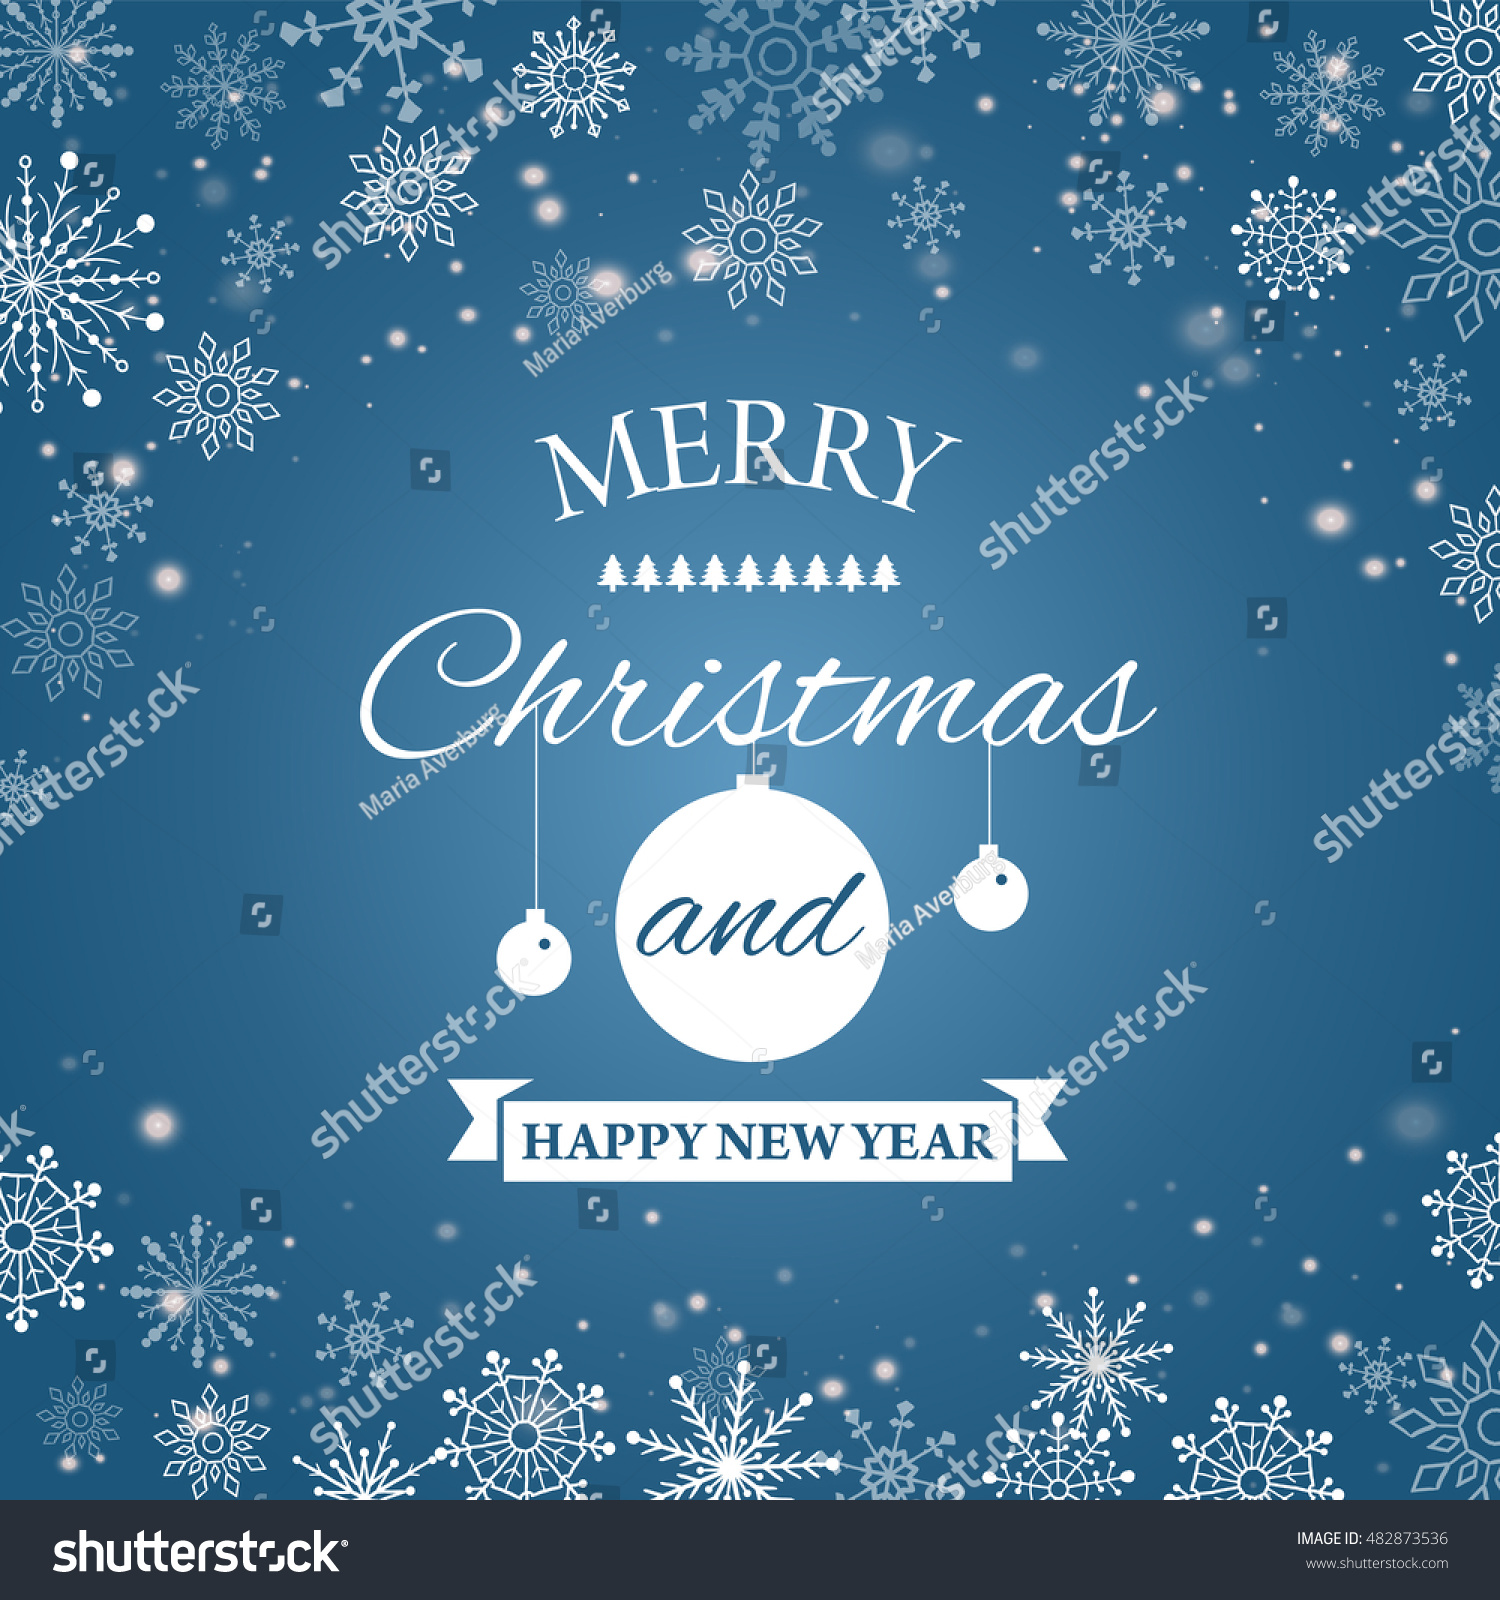 Ecard Happy New Year Merry Christmas Stock Vector Hd Royalty Free